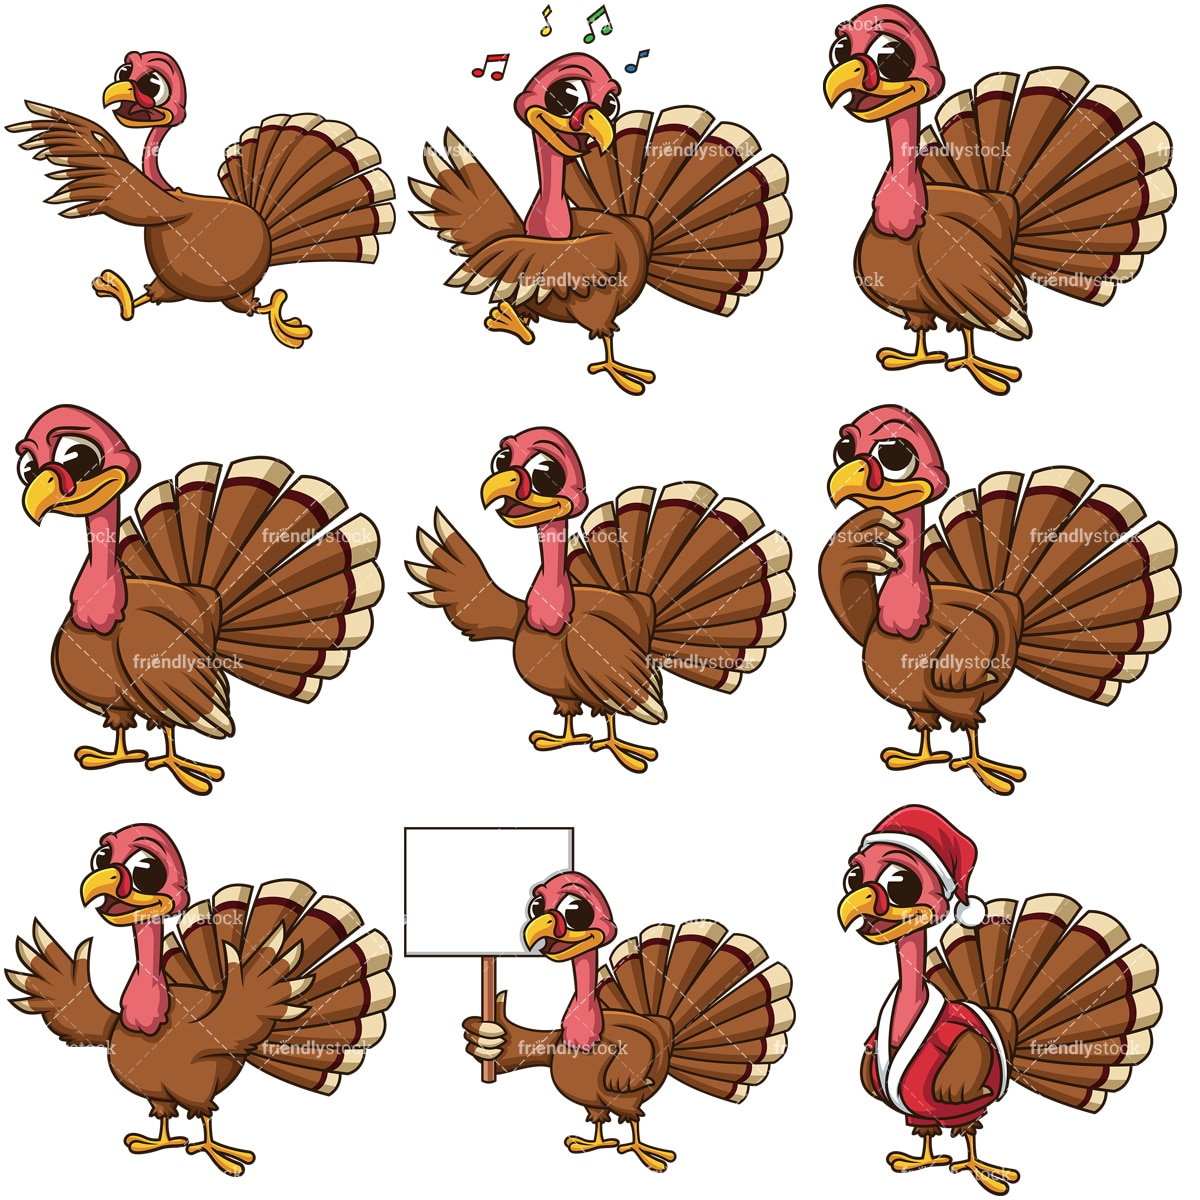 Cute Cartoon Turkeys Vector Clipart - FriendlyStock